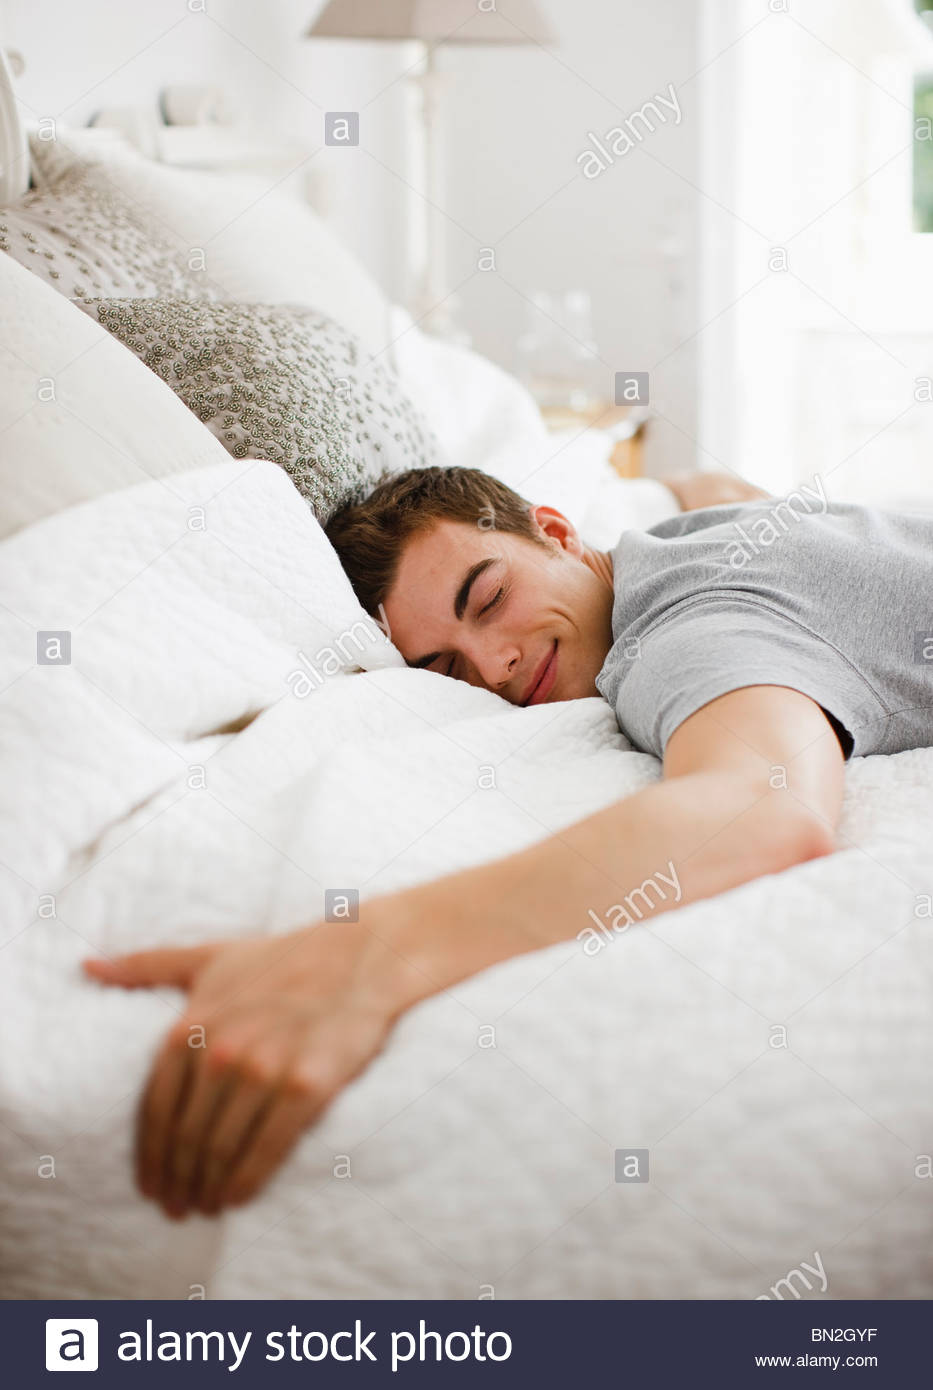 happy man laying on bed stock photo, royalty free image: 30175363